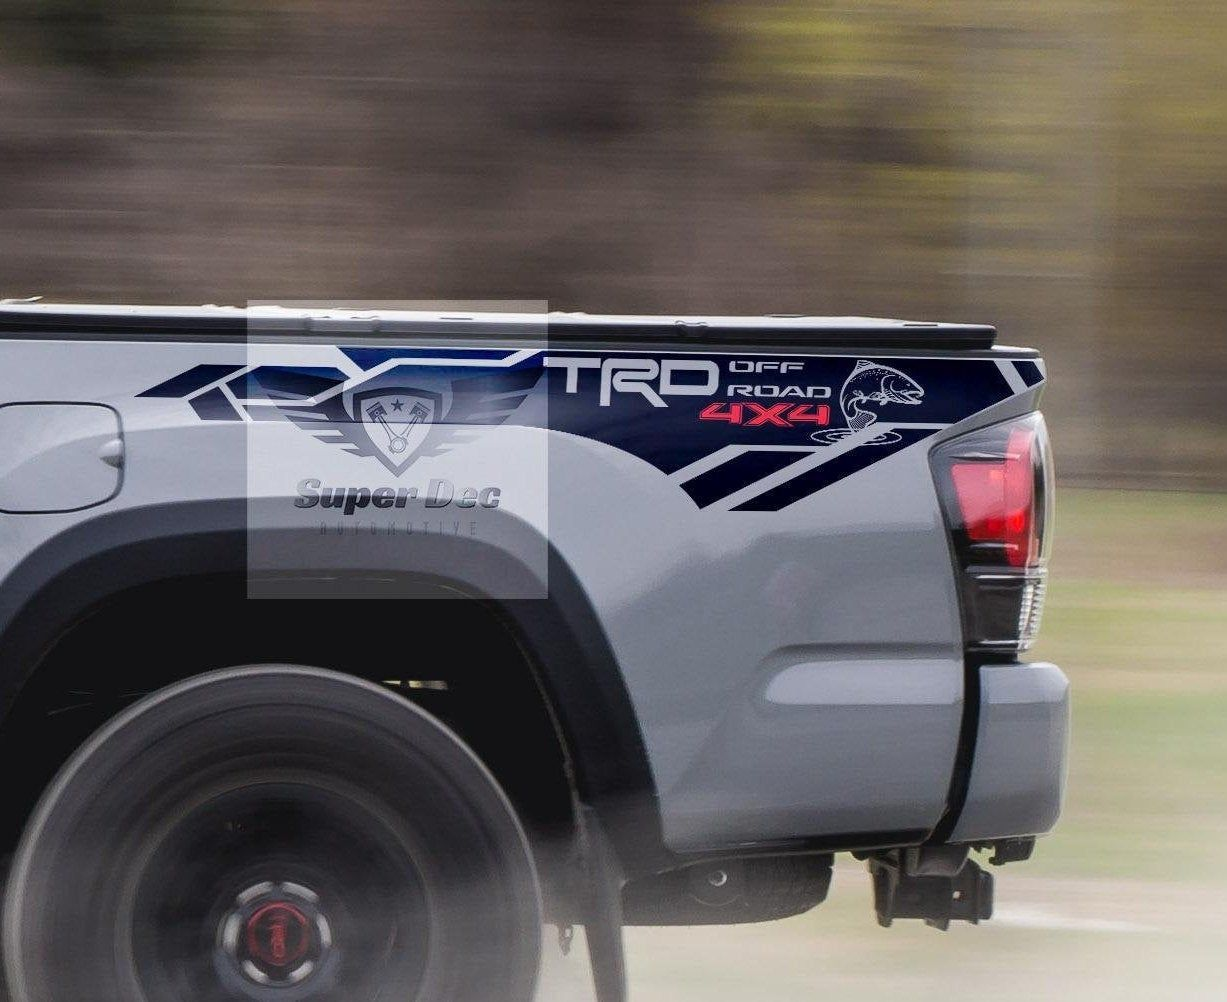 Trout Edition TRD 4x4 PRO Sport Off Road Side Vinyl